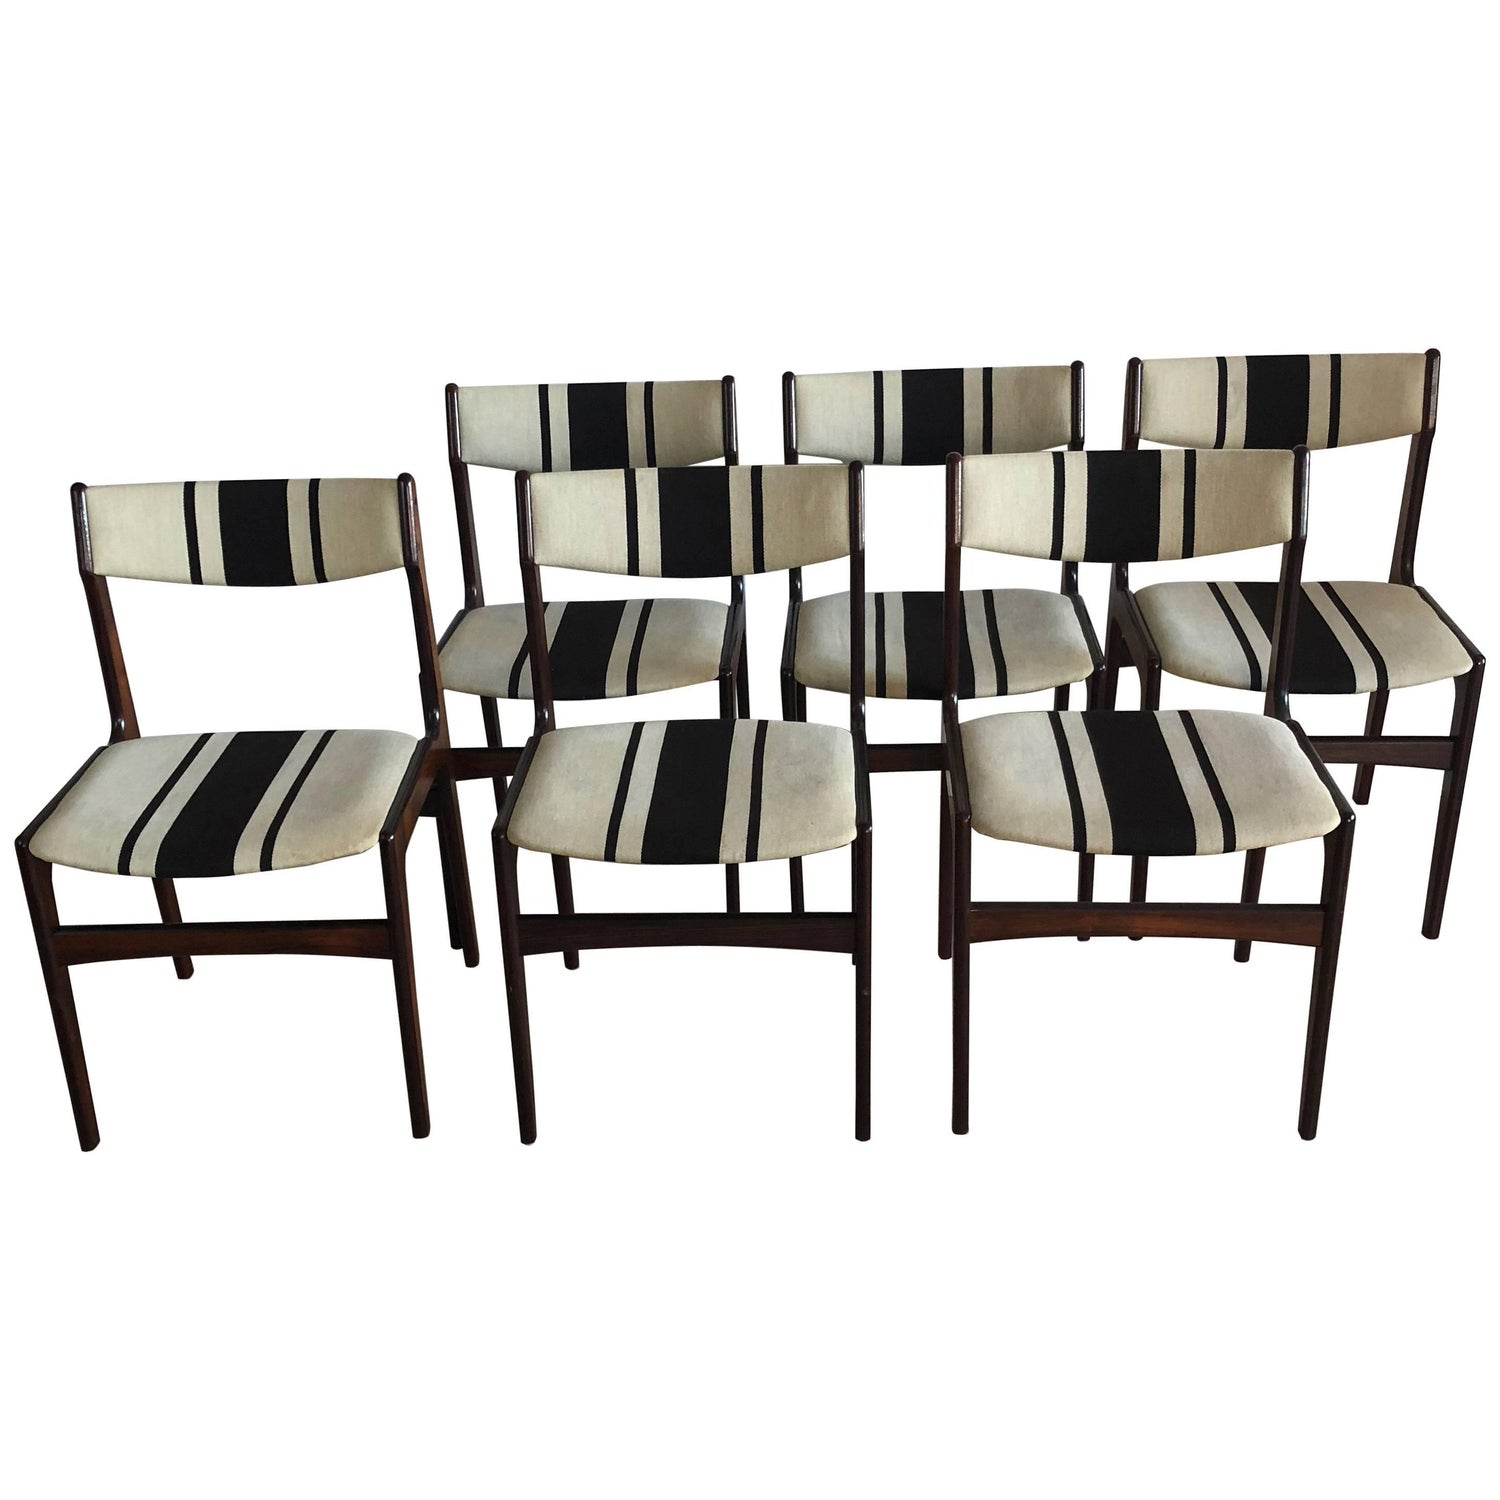 Danish Rosewood Midcentury Dining Chairs Striped Erik Buch Style